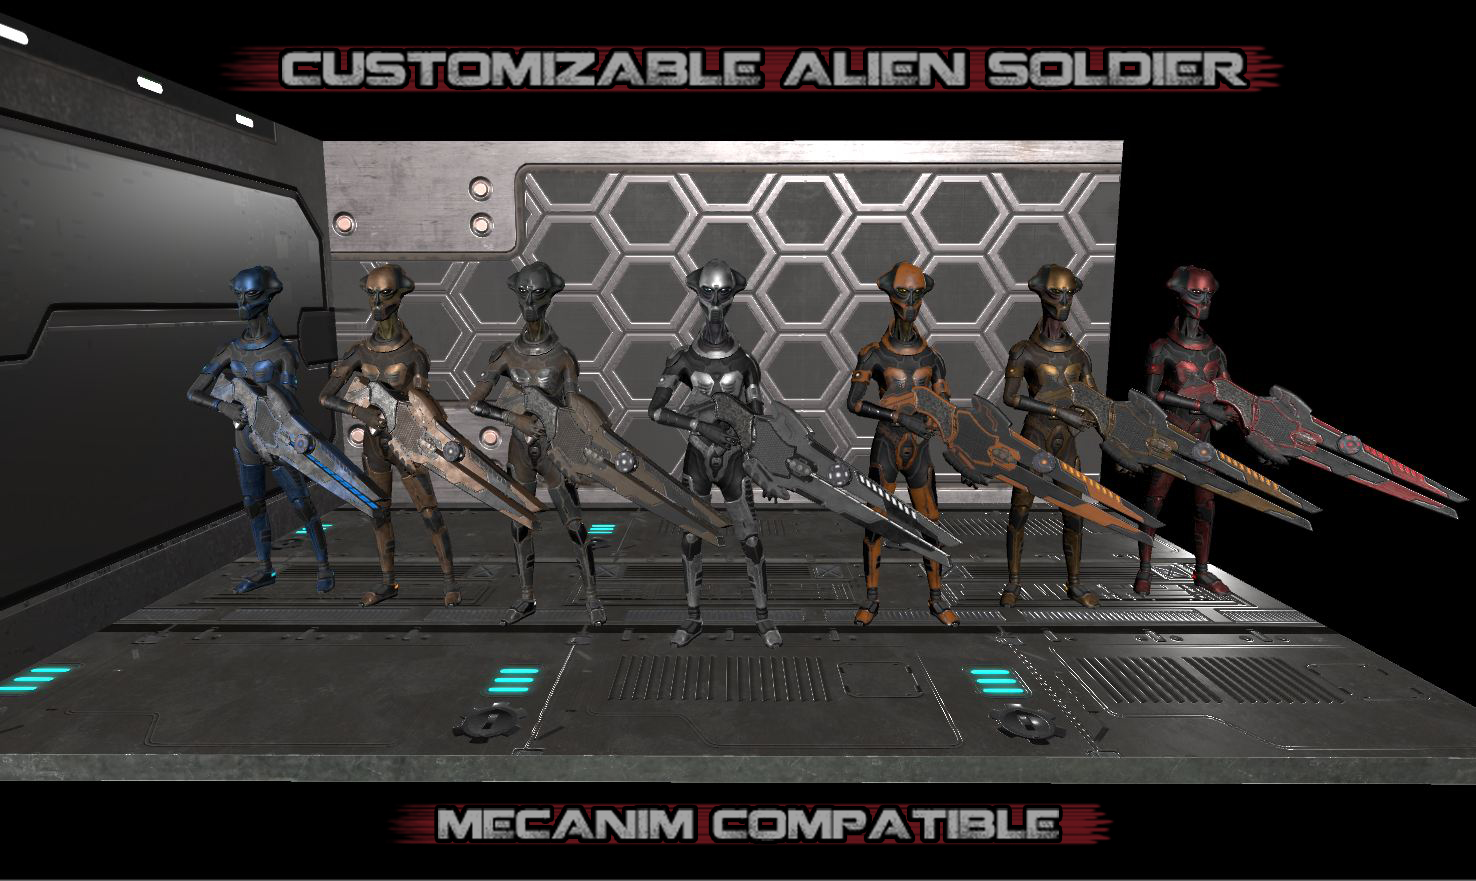 Customizable Alien Soldier